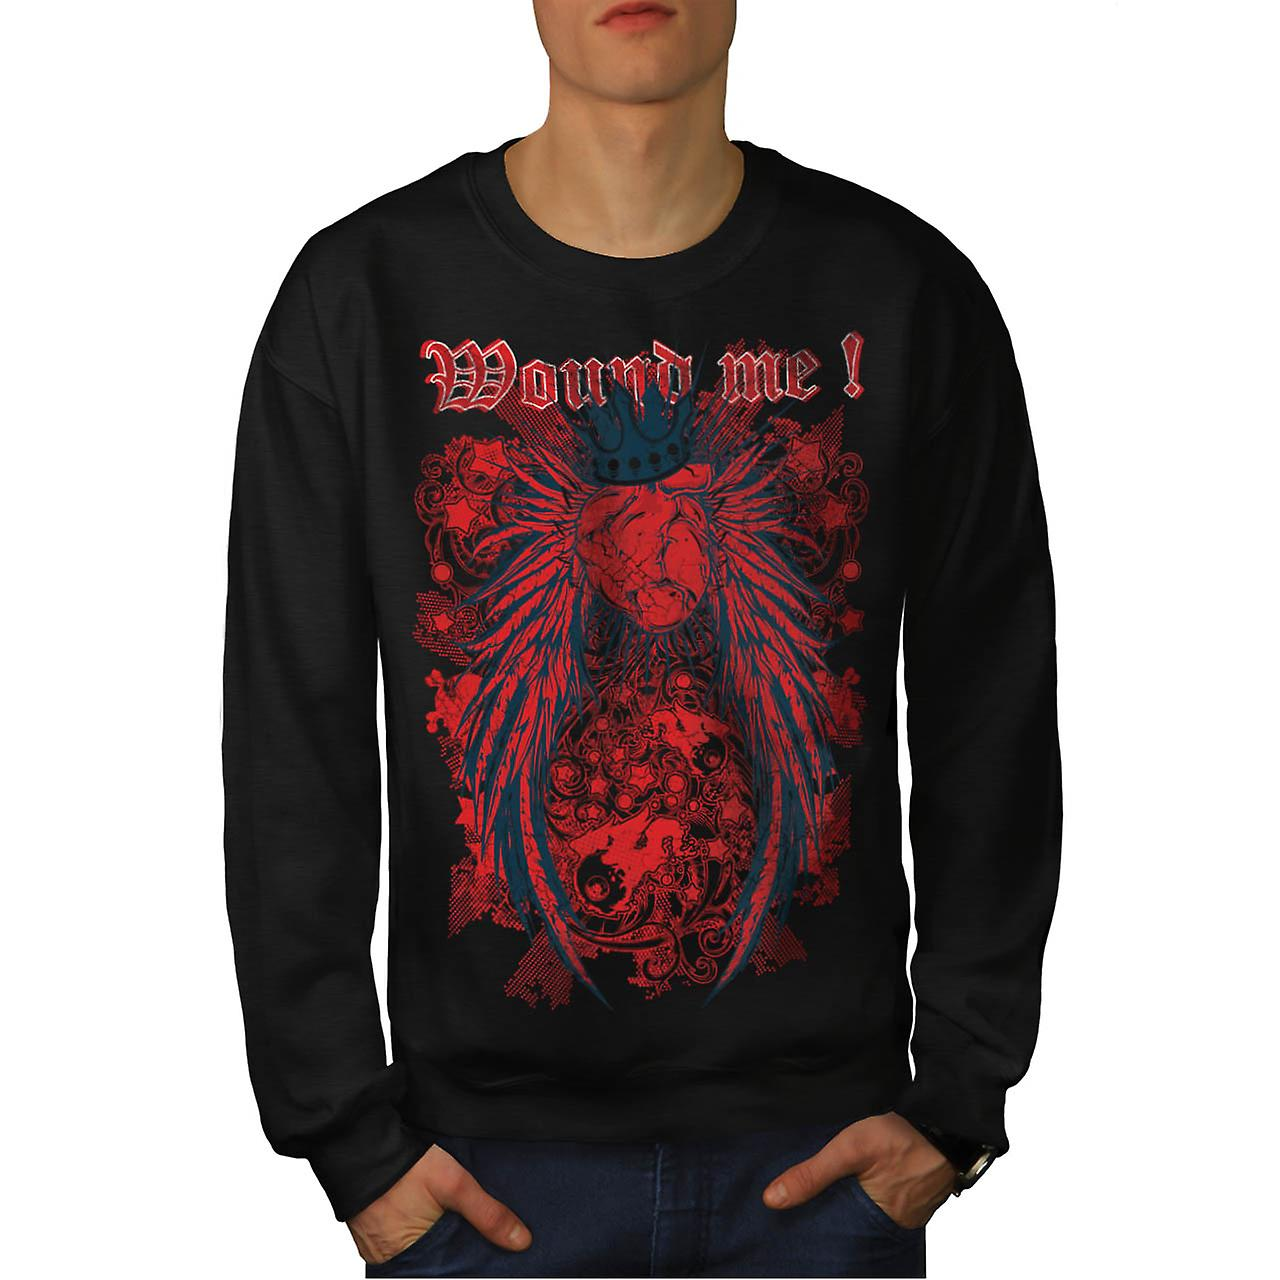 Mound Me Heart Royal Love Queen Men Black Sweatshirt | Wellcoda